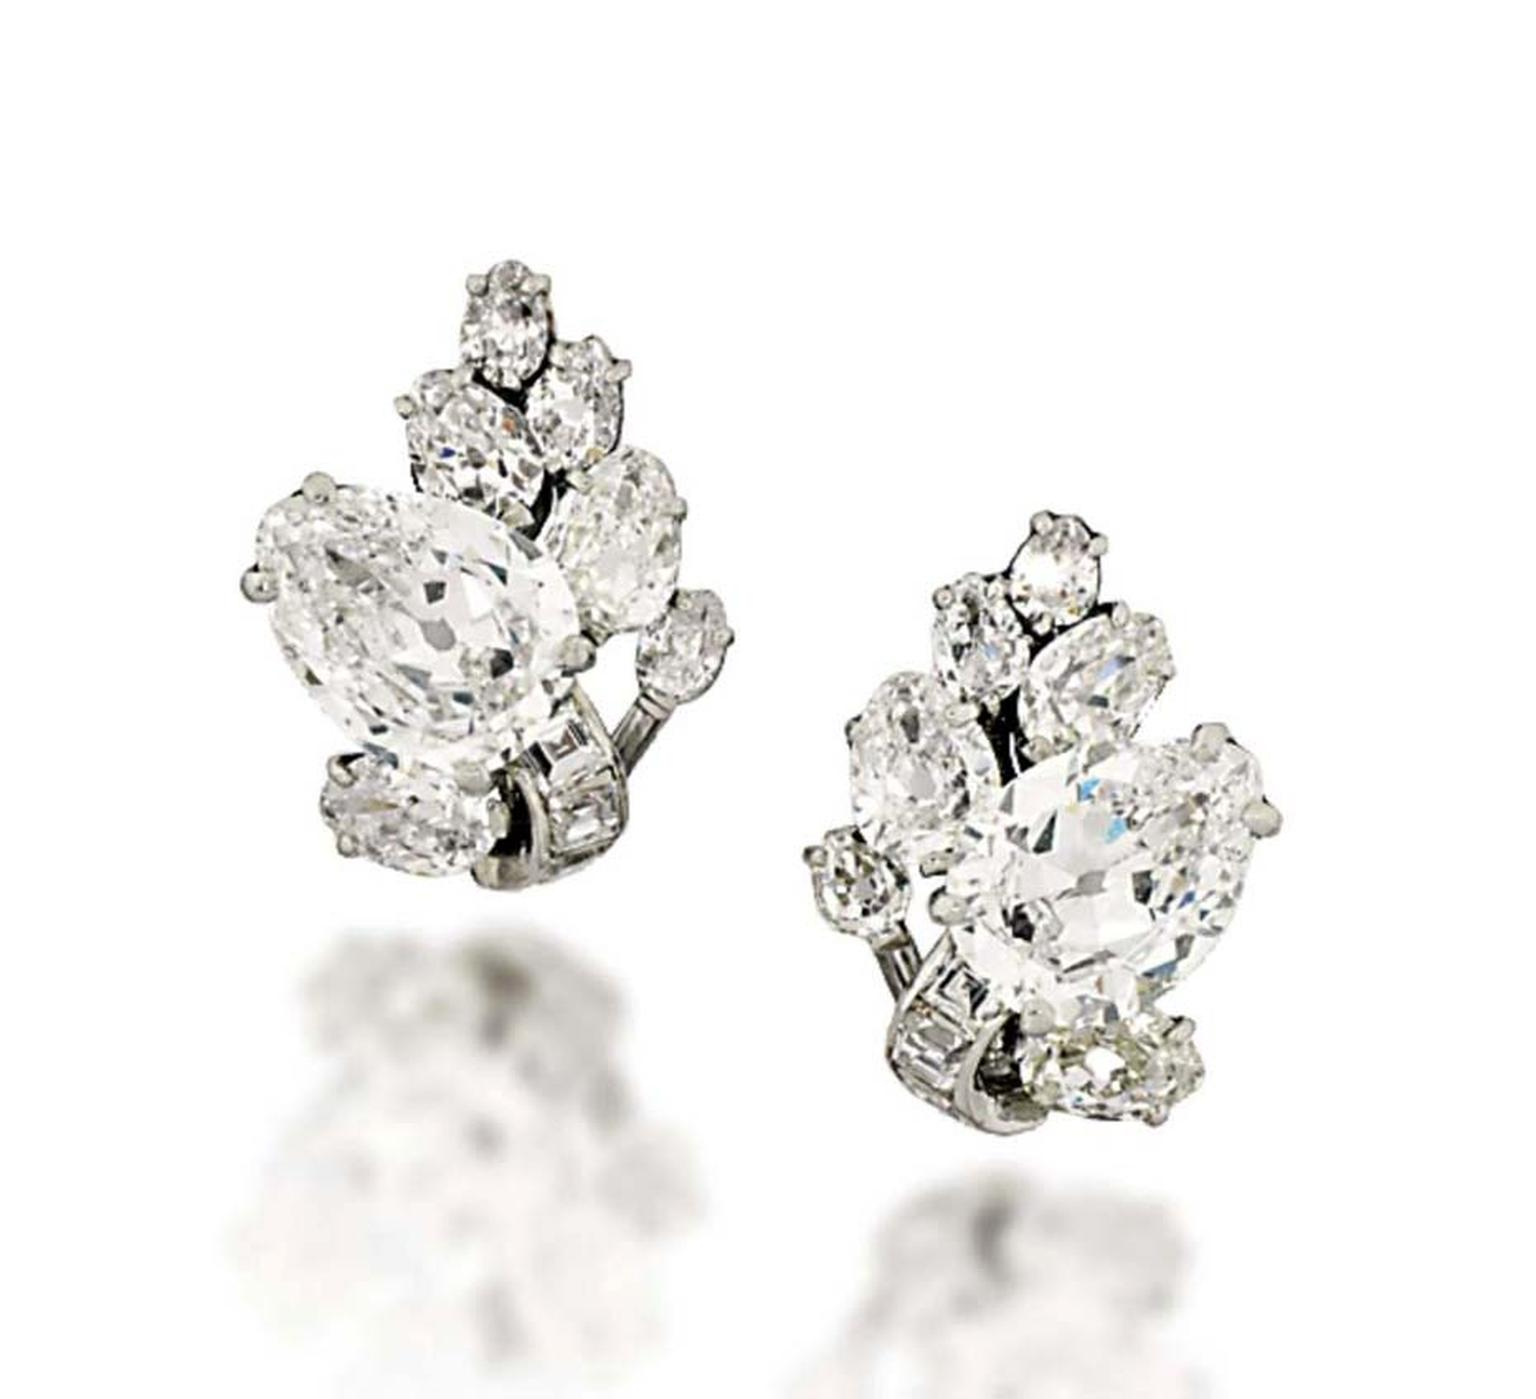 A pair of cluster diamond earrings from Christie's Important Jewels sale, taking place on 26 November 2014.